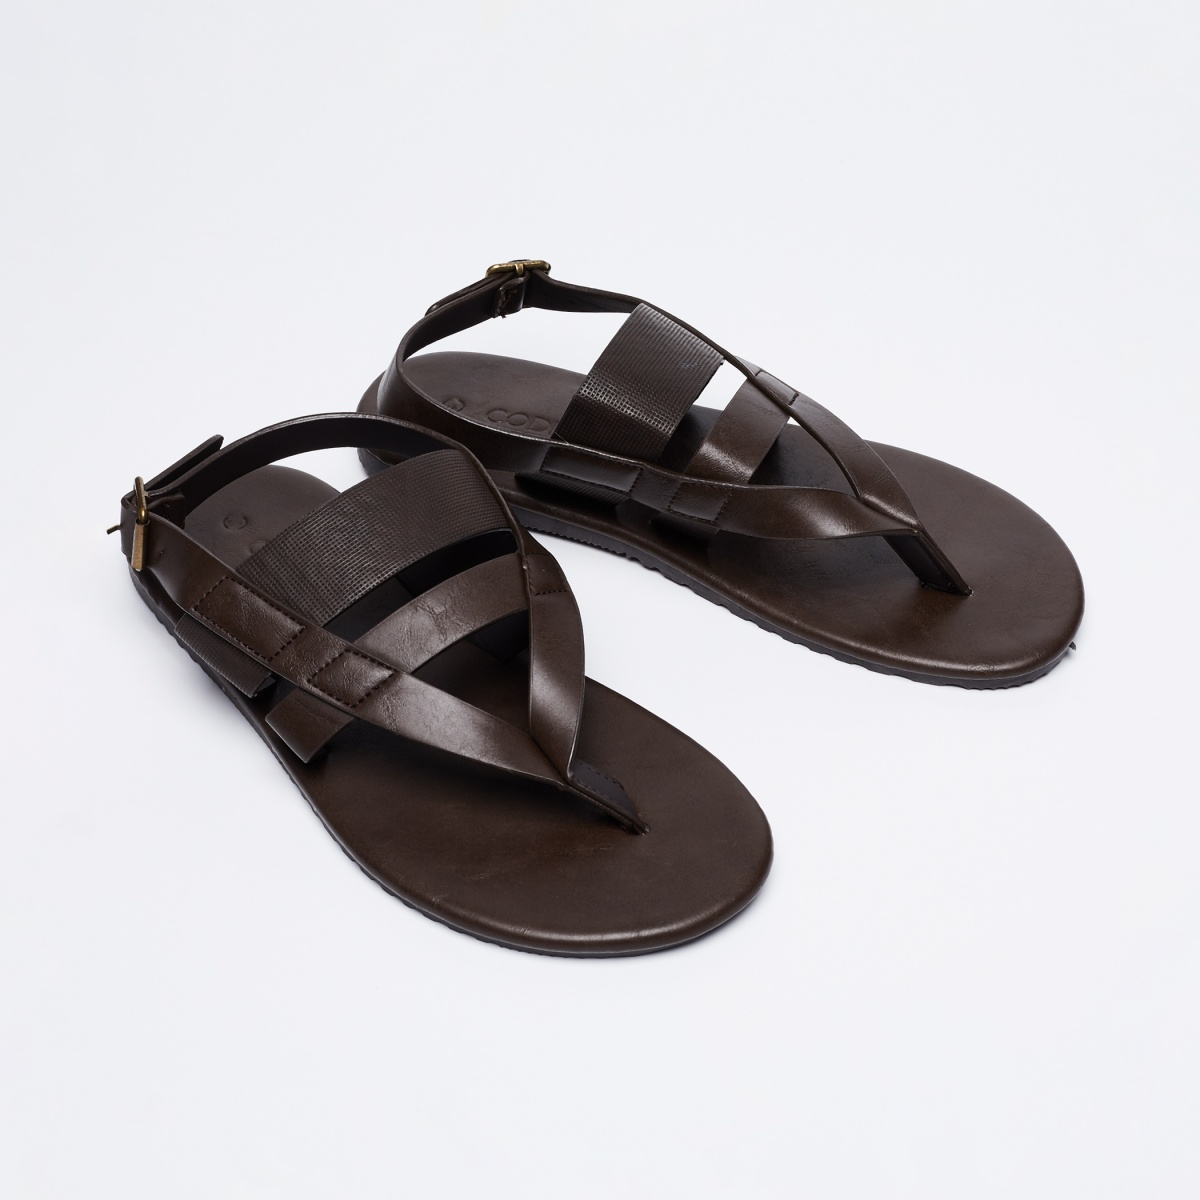 CODE Buckle Closure Strappy Sandals